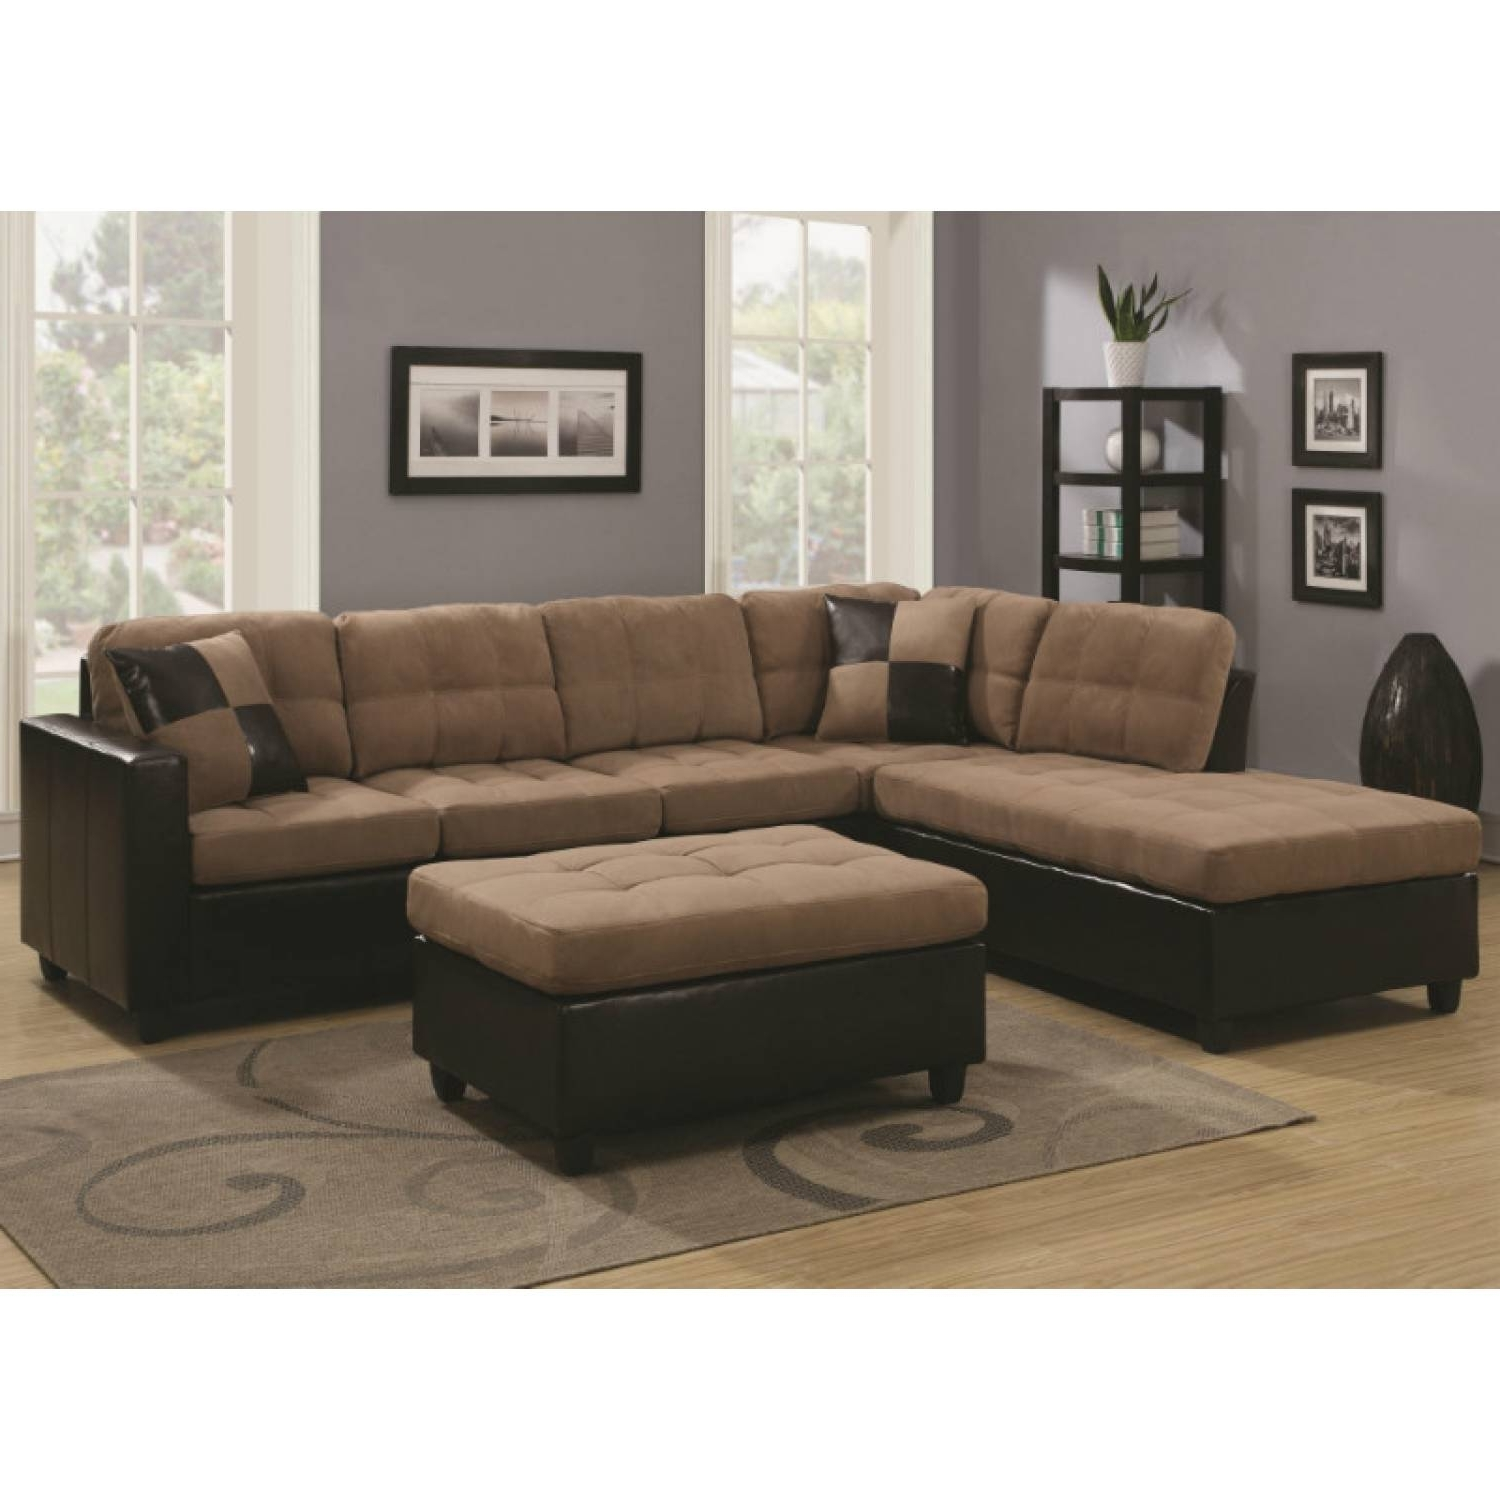 [%Sectional Sofas Discount – Sale Off 20% Furniture In San Francisco Regarding Well Liked San Francisco Sectional Sofas|San Francisco Sectional Sofas In Most Current Sectional Sofas Discount – Sale Off 20% Furniture In San Francisco|Preferred San Francisco Sectional Sofas With Regard To Sectional Sofas Discount – Sale Off 20% Furniture In San Francisco|Well Known Sectional Sofas Discount – Sale Off 20% Furniture In San Francisco Intended For San Francisco Sectional Sofas%] (View 1 of 15)